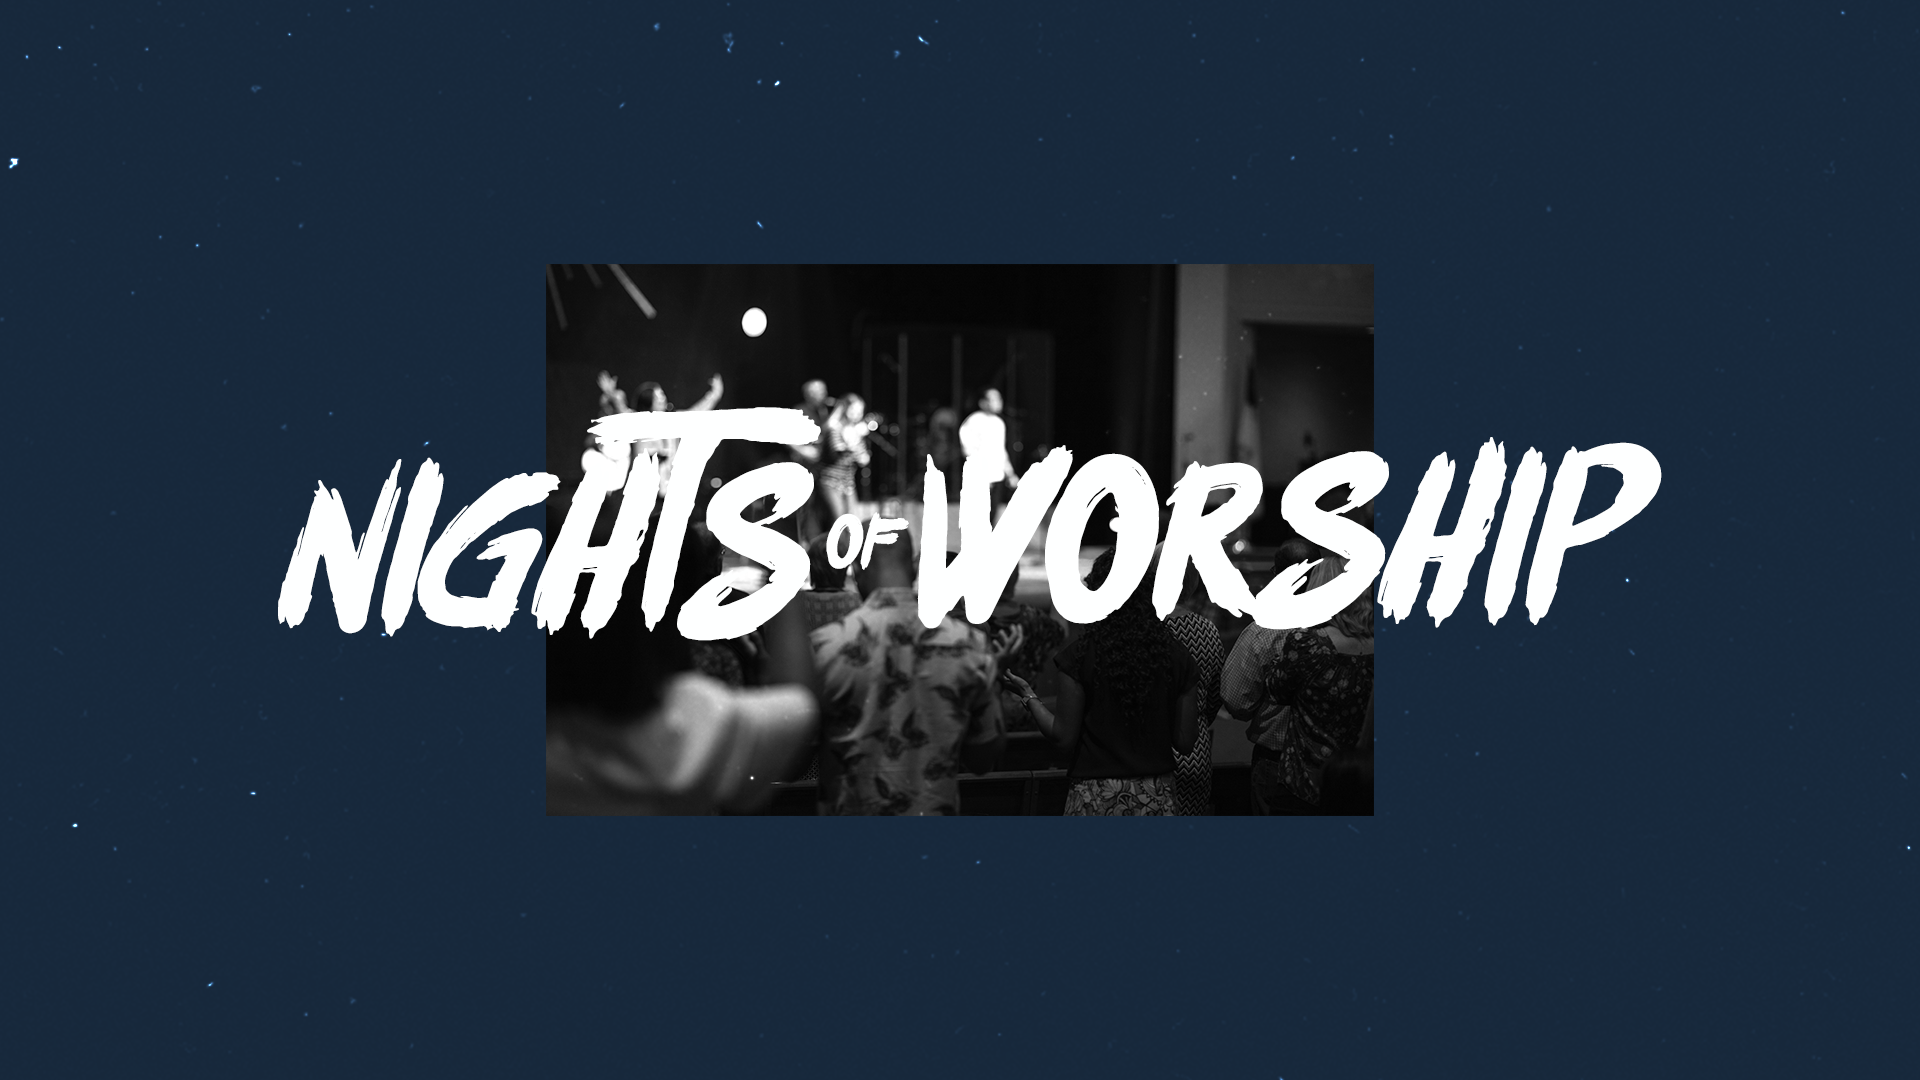 WorshipNights_Title.png